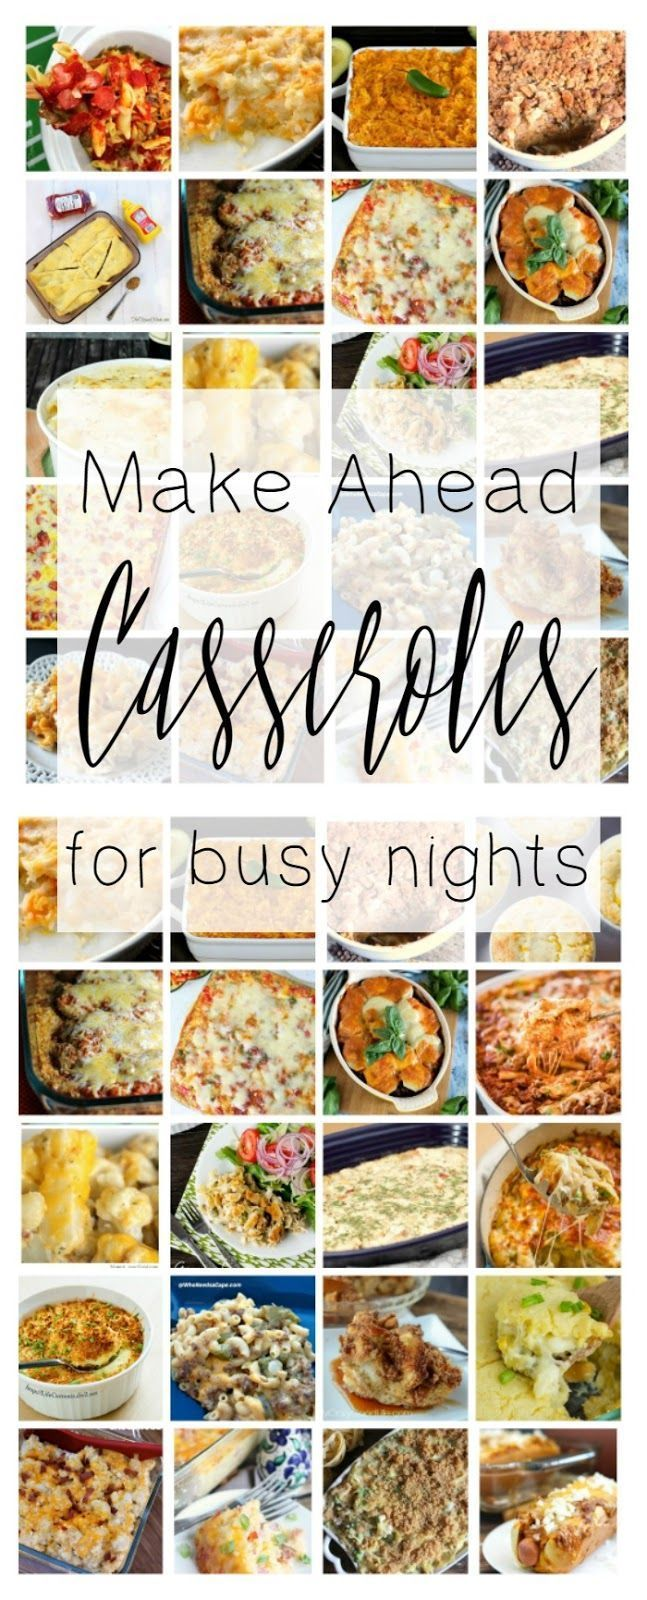 this collection of make ahead casserole dinner recipes is perfect